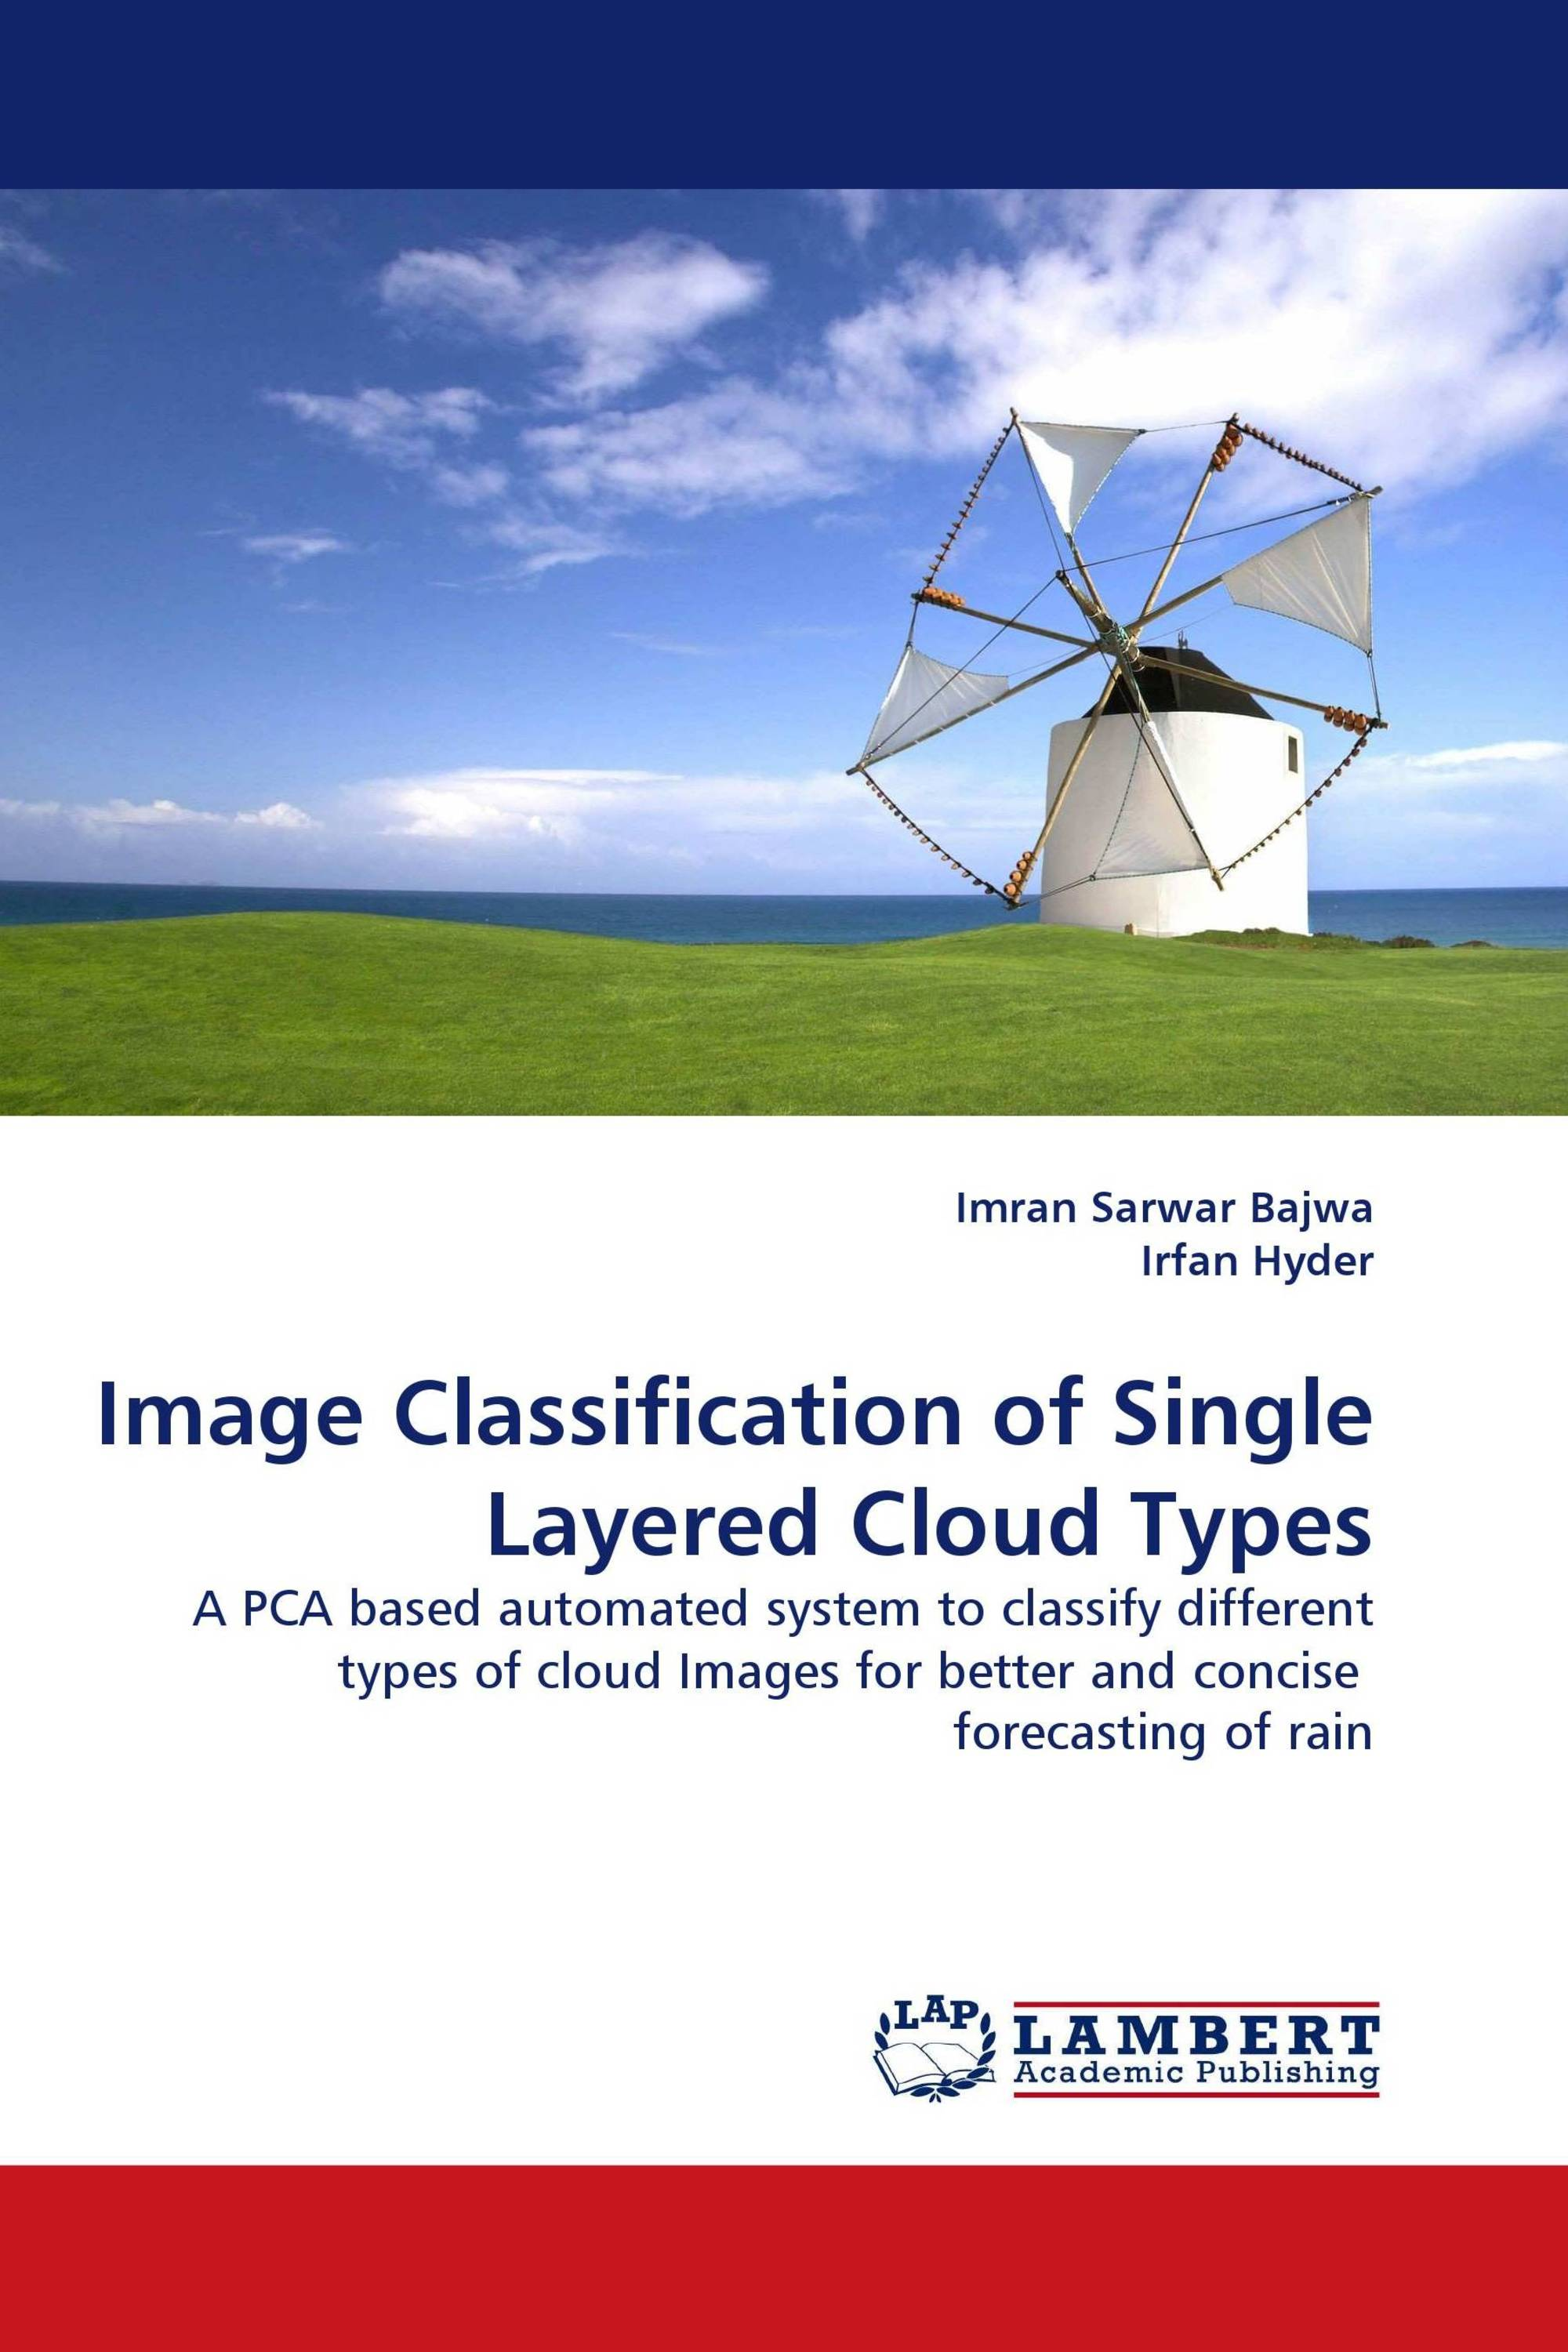 Image Classification of Single Layered Cloud Types